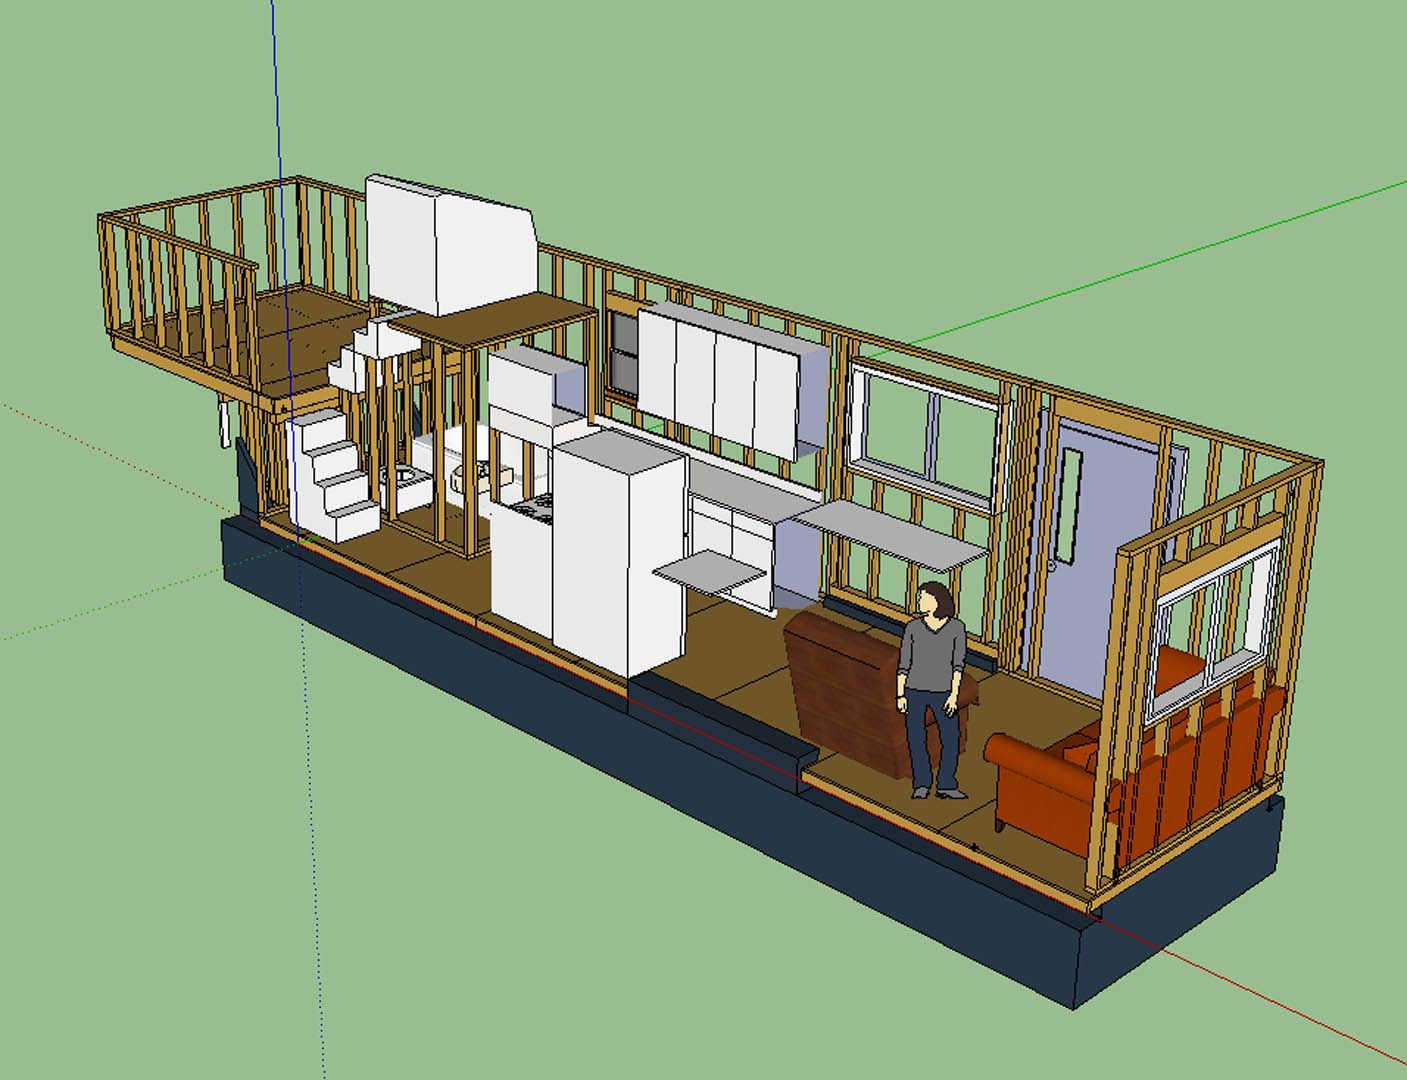 Tiny house layout has master bedroom over fifth wheel for Small house layout design